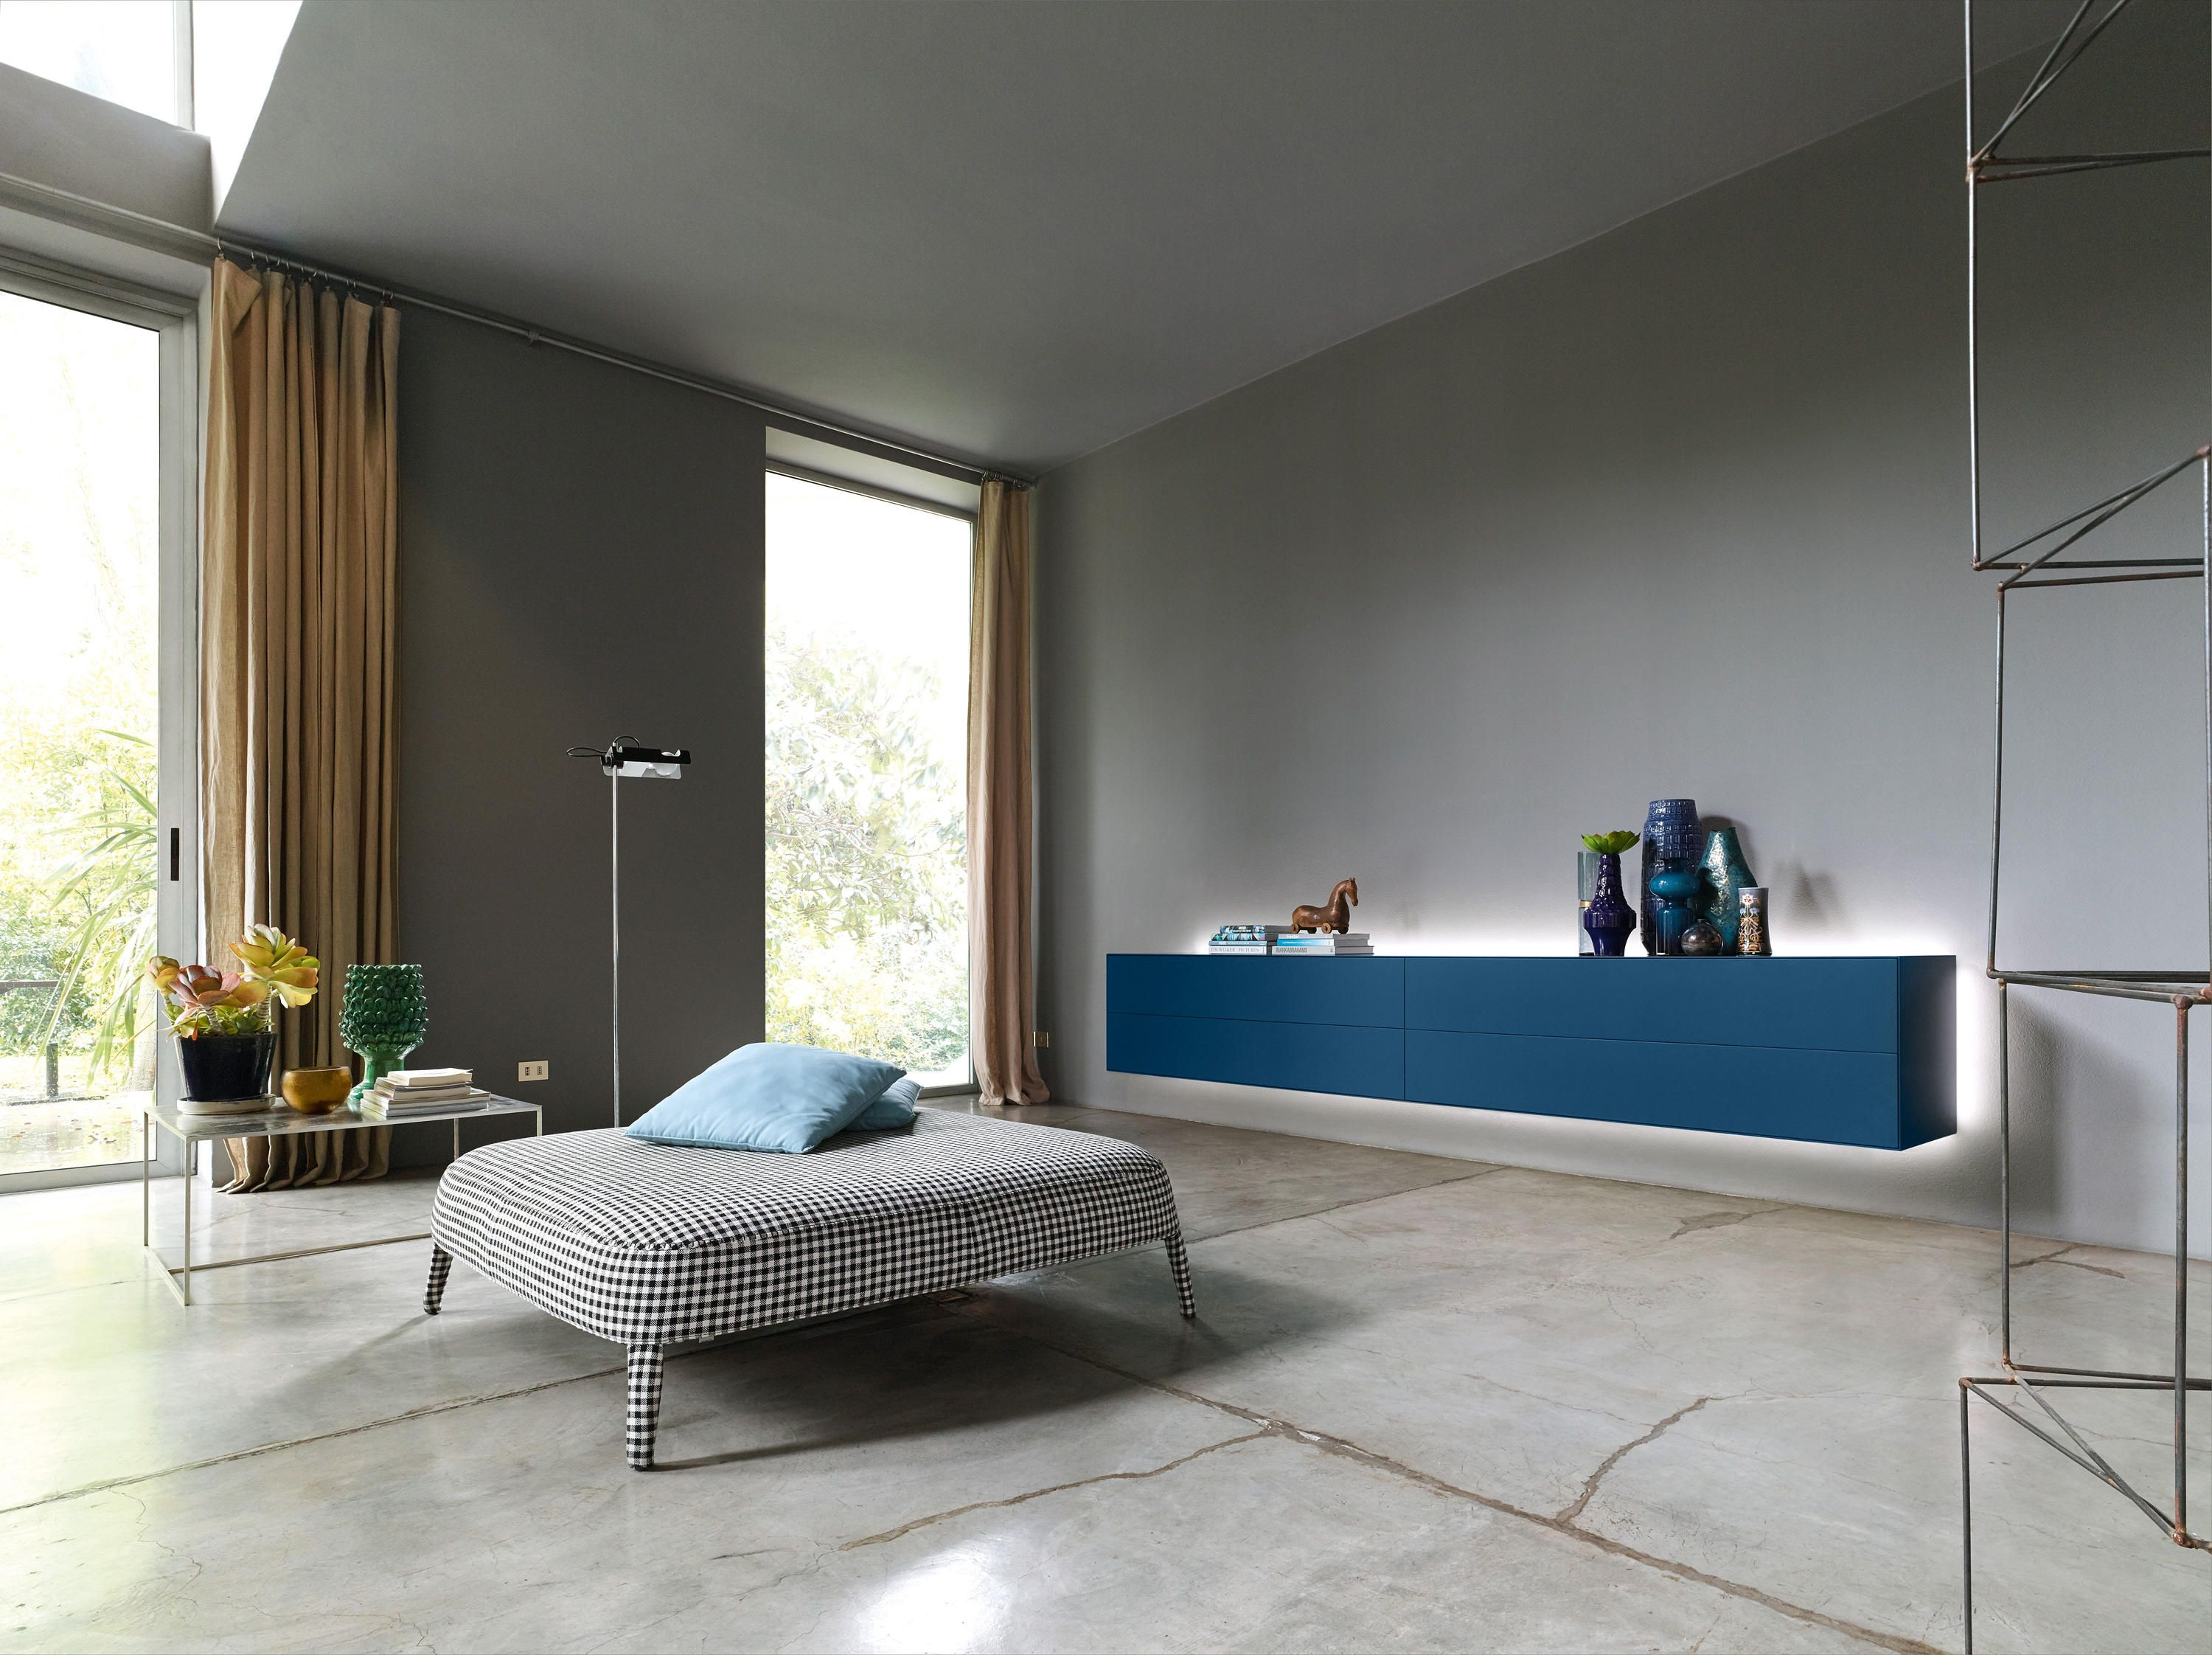 Nex Sideboard Sideboards From Piure Architonic Furniture Sideboard Designs Contemporary Furniture